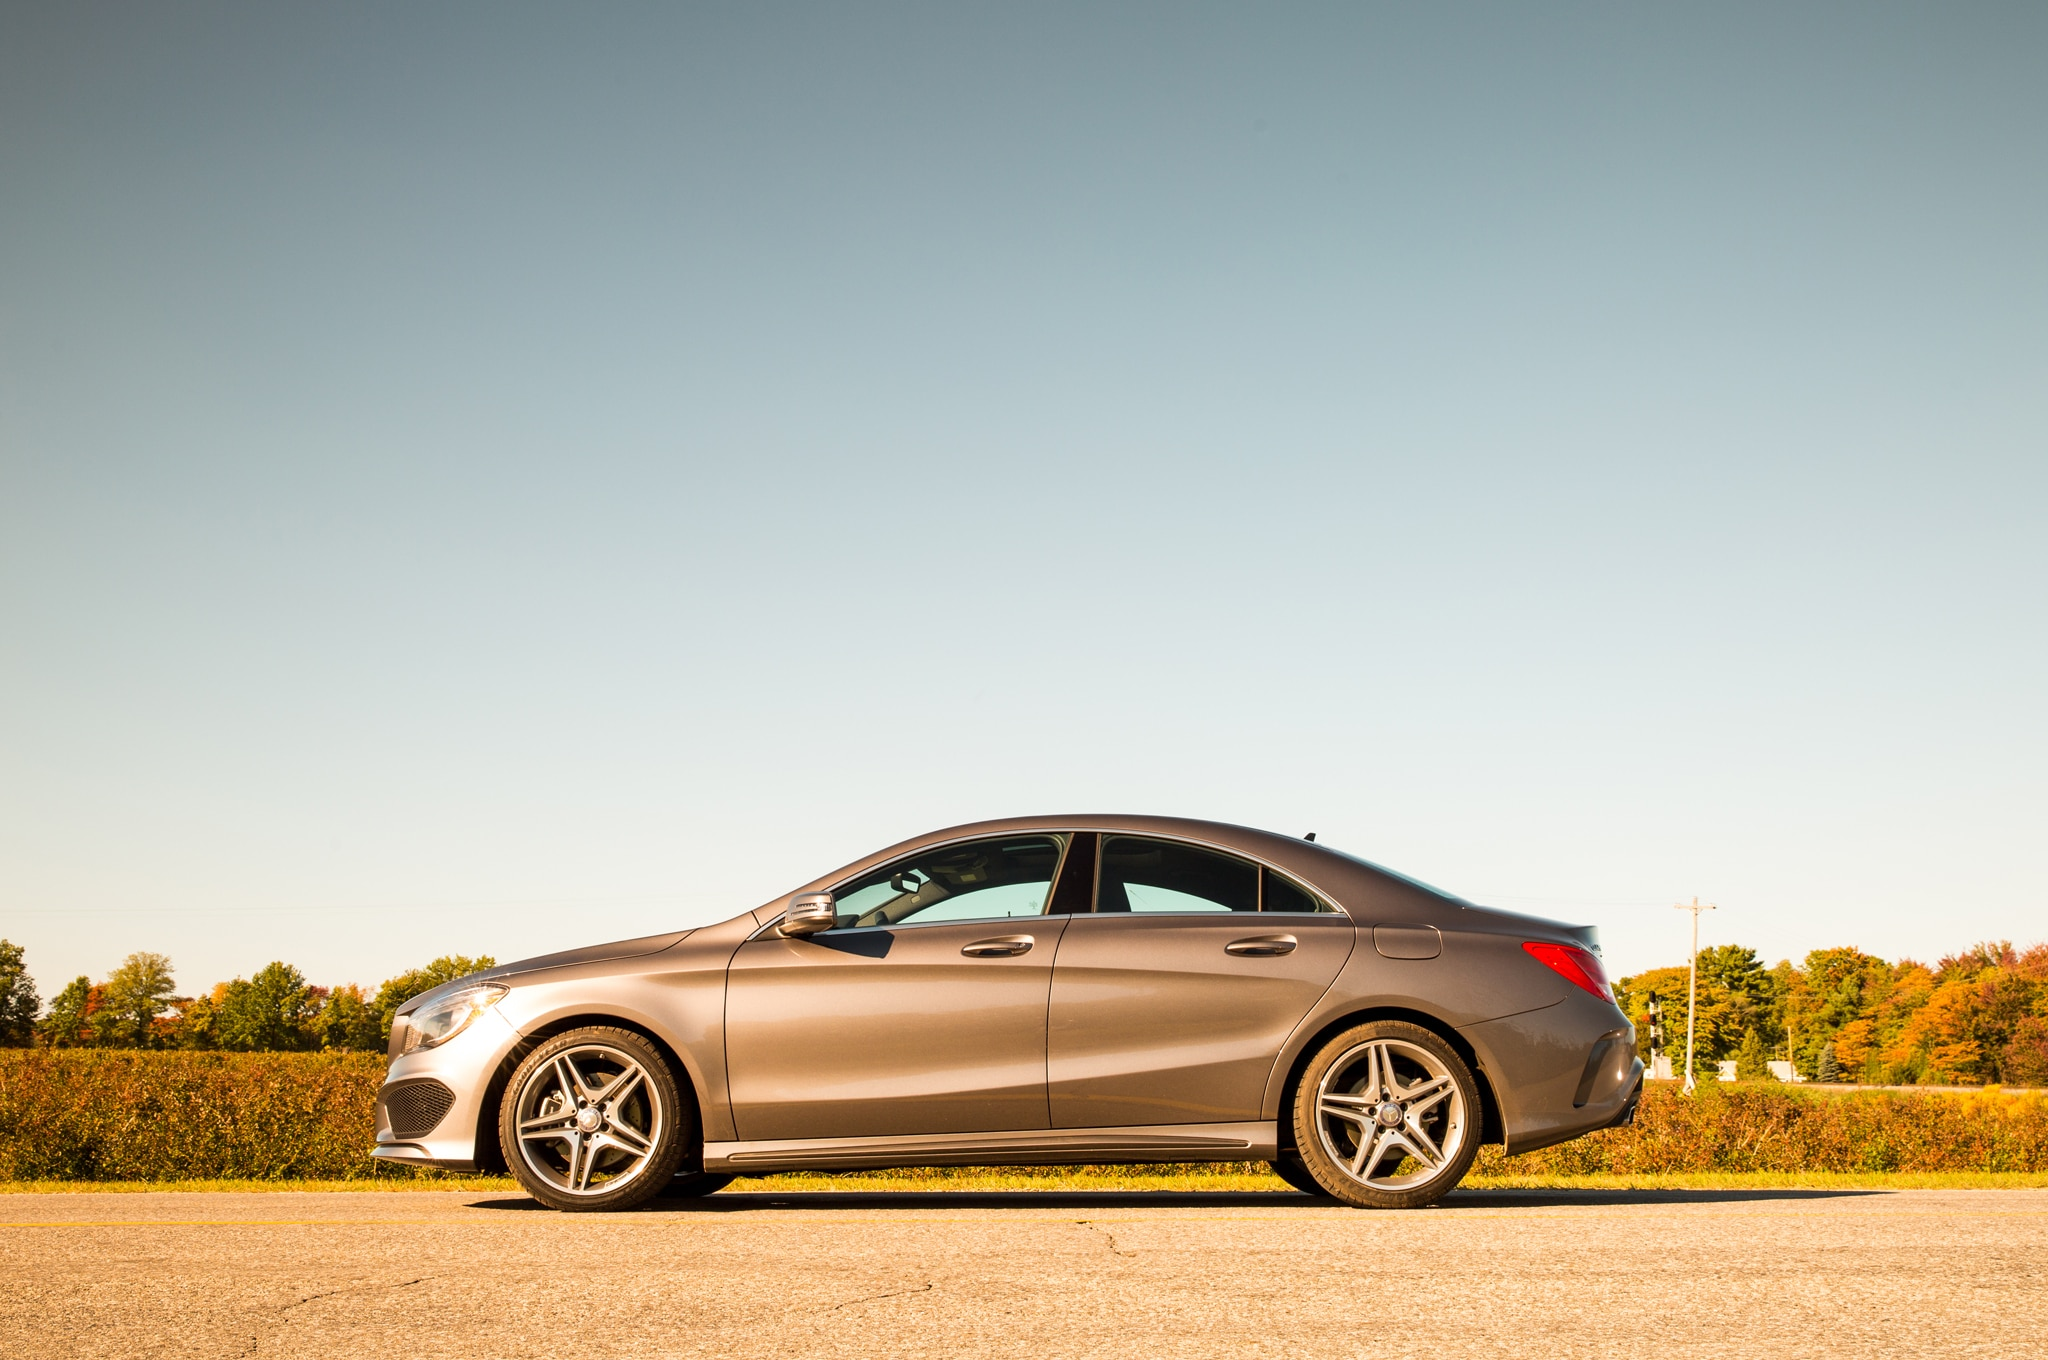 2014 Mercedes Benz CLA250 Automobile Of The Year Contender 51